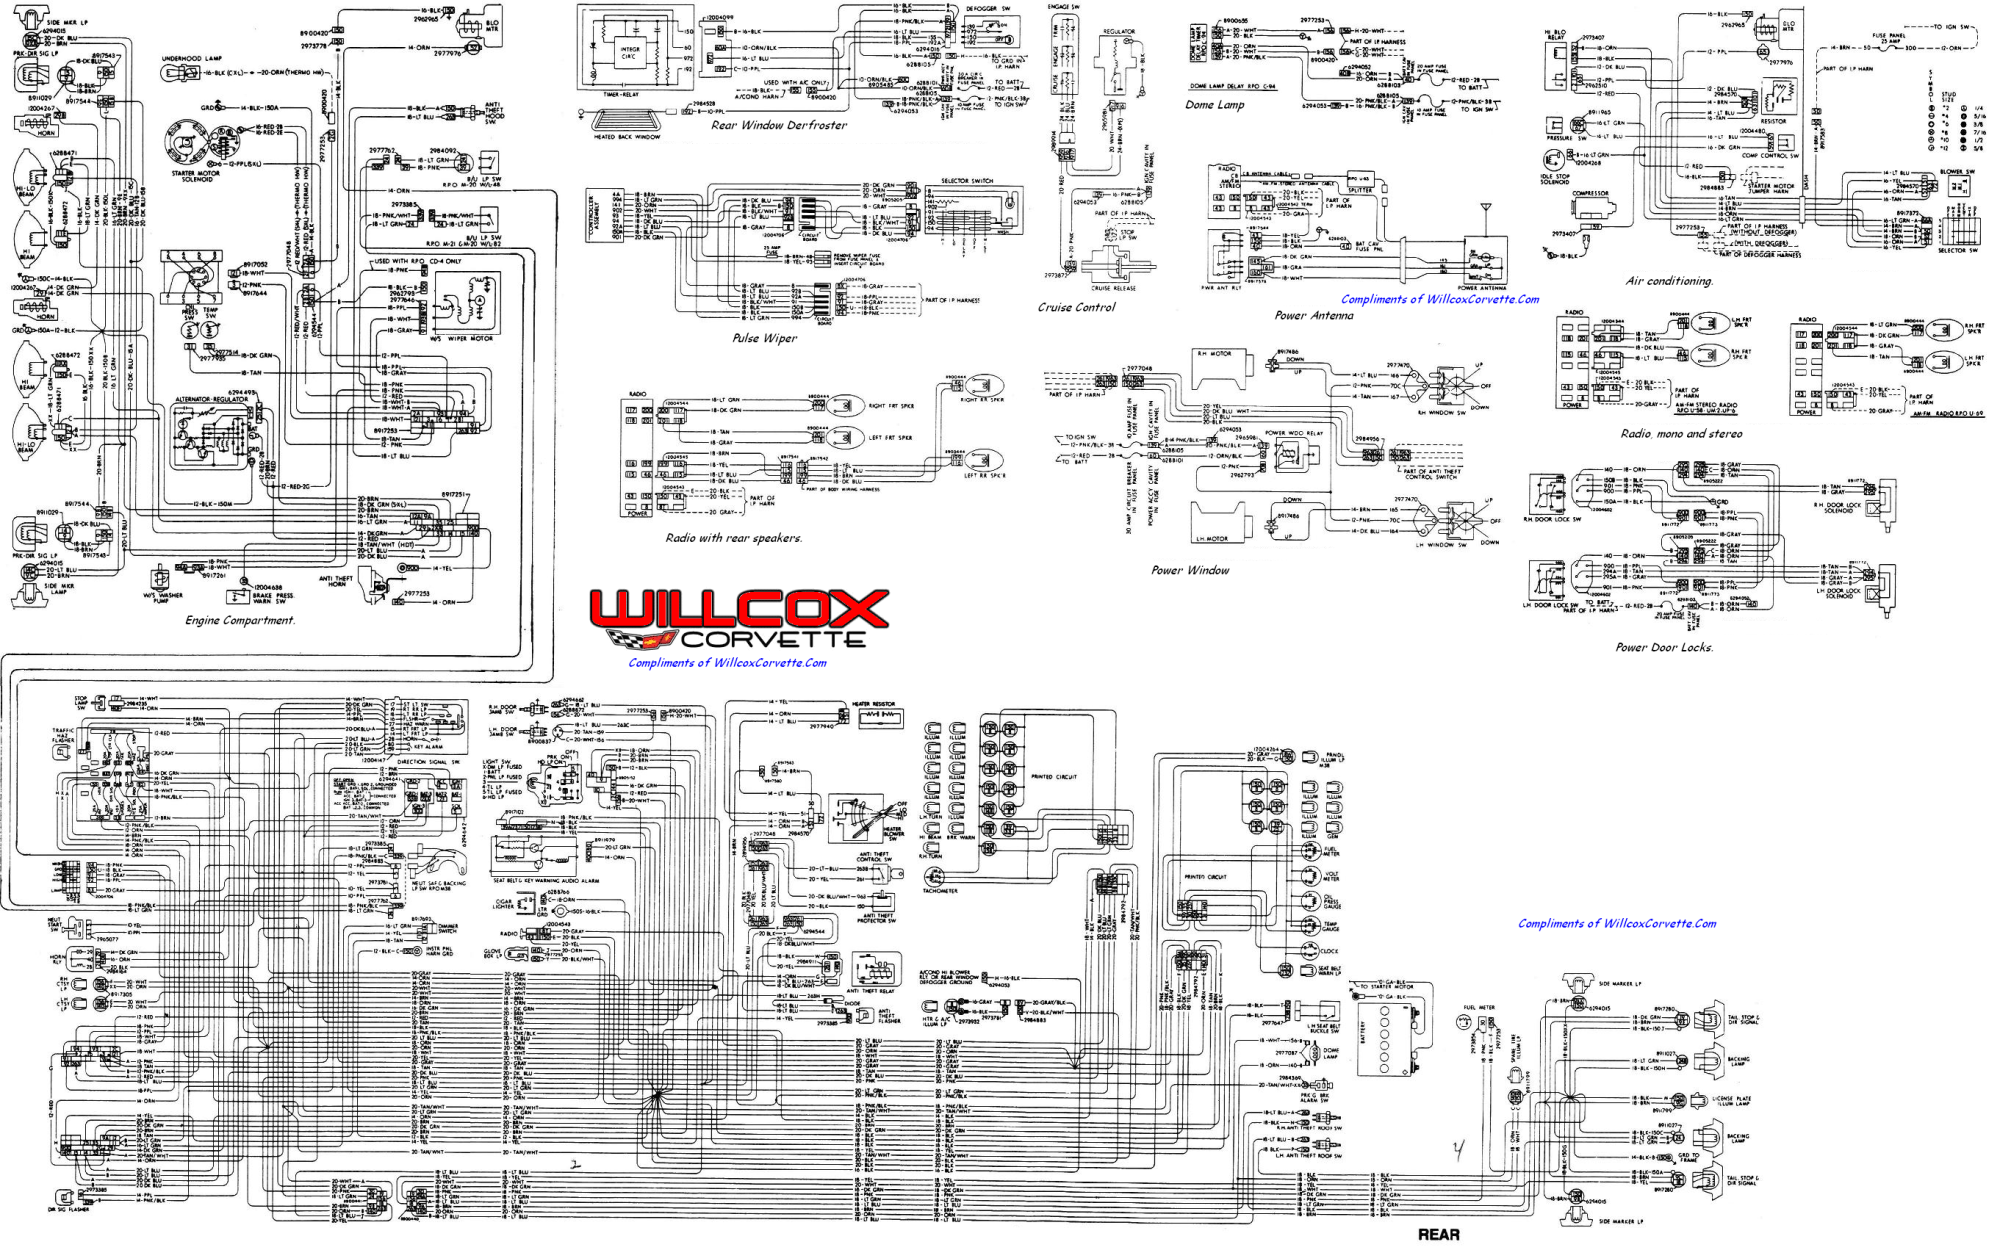 hight resolution of 1974 trans am wiring diagram wiring diagrams rh 15 jennifer retzke de 1989 pontiac firebird wiring diagram 1989 pontiac firebird wiring diagram